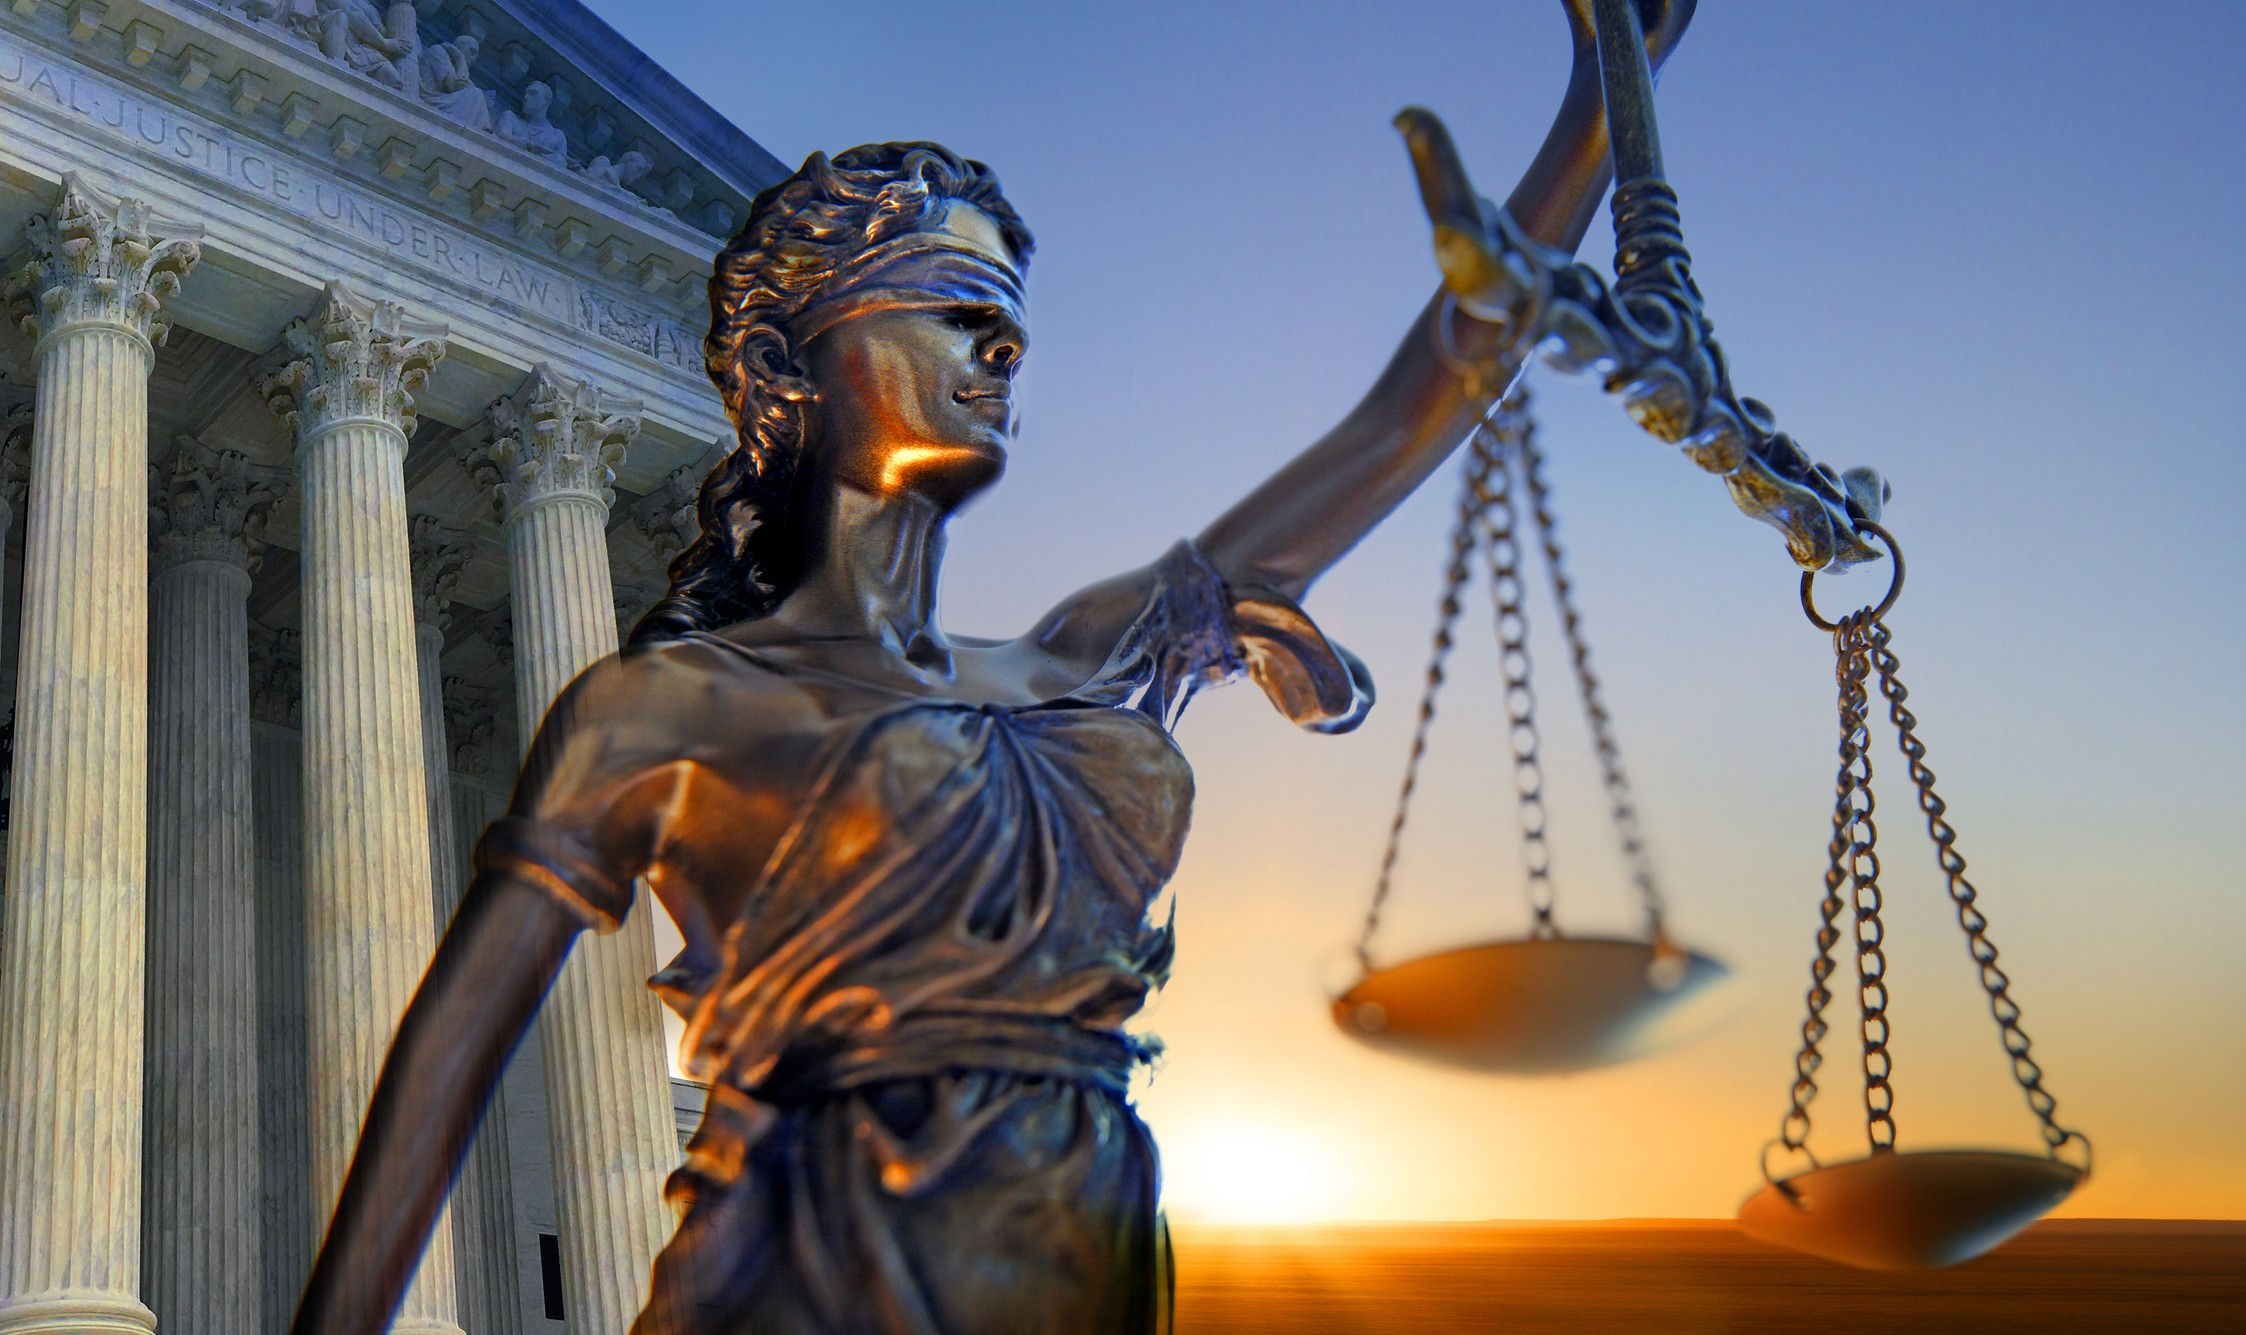 Why are Justice and Revenge Represented as Women?   Breezes from Wonderland